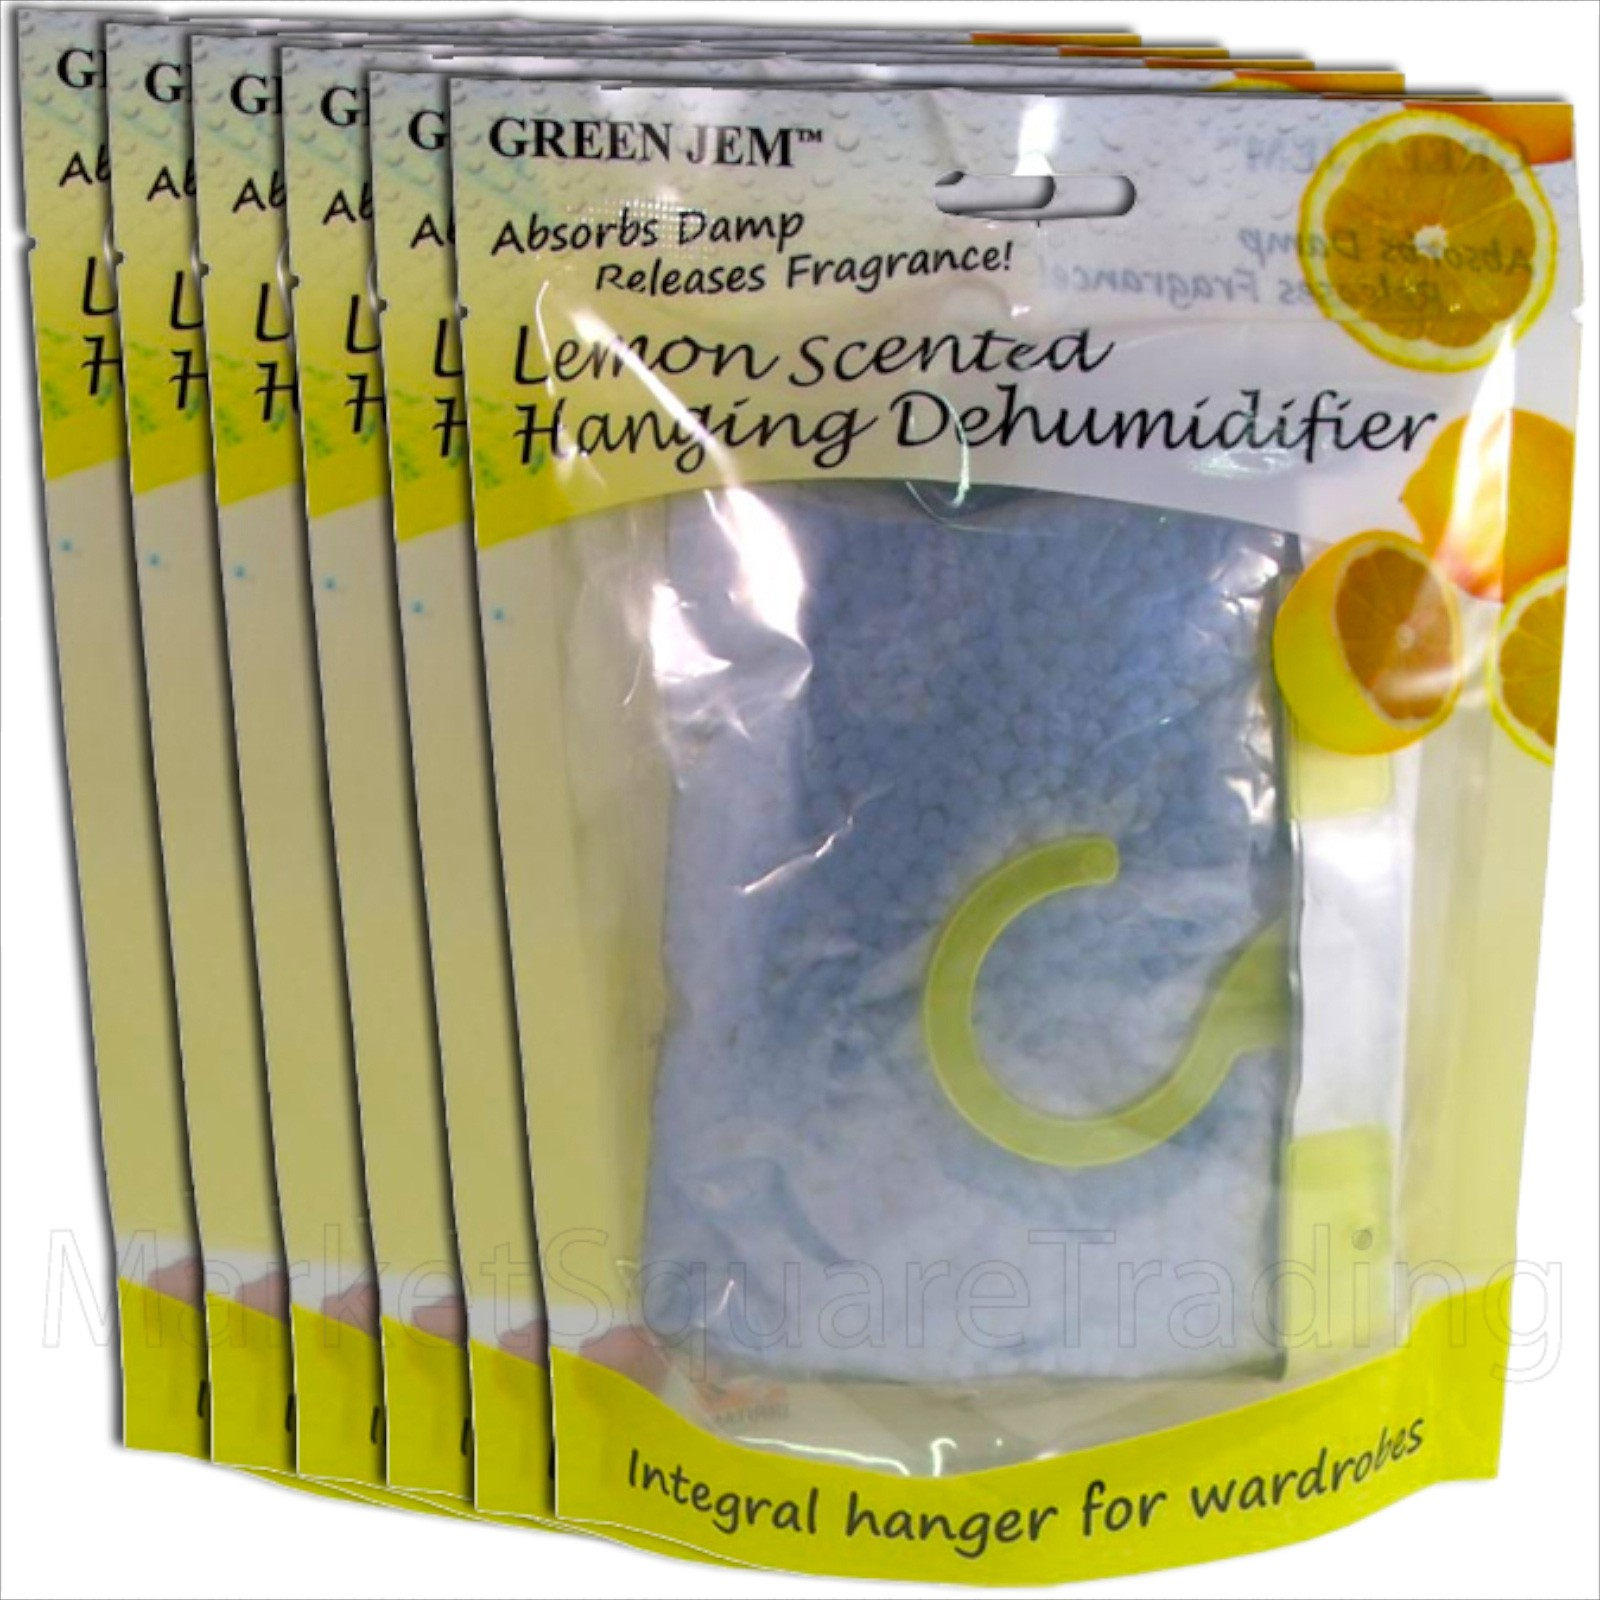 6 PACKS GREEN JEM 500ml DEHUMIDIFIER SCENTED WARDROBE HANGER - LEMON SCENTED